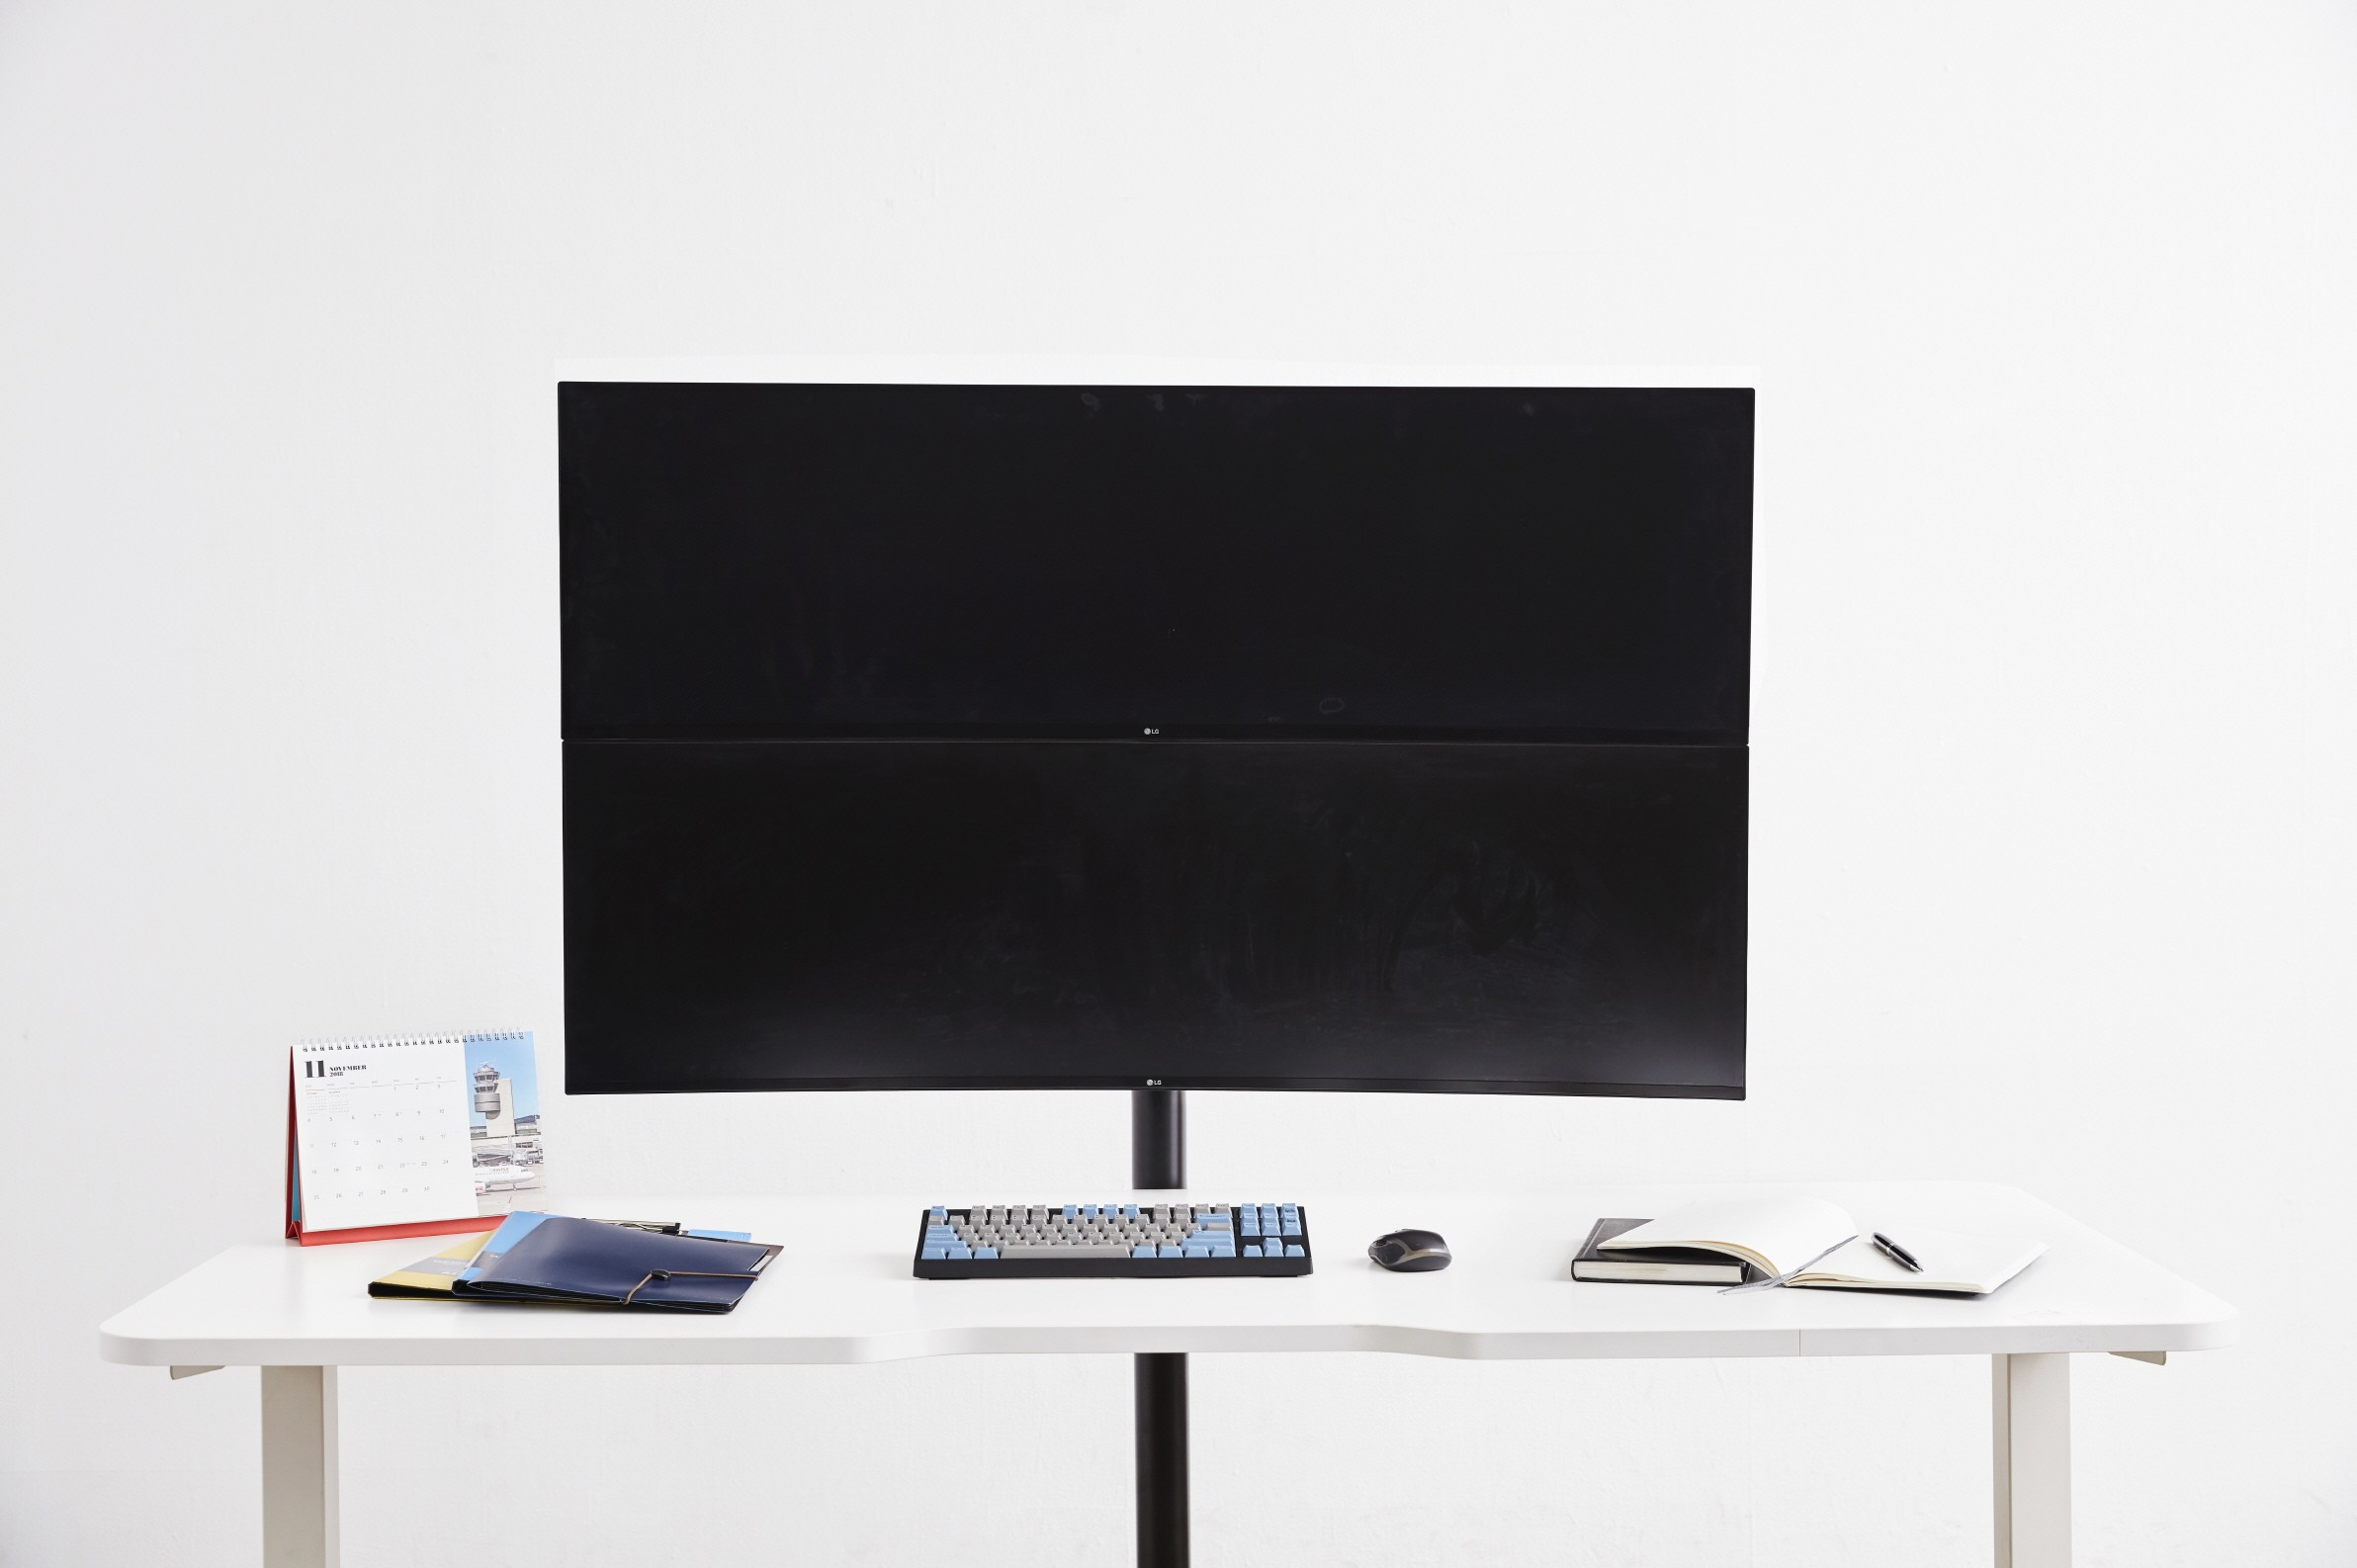 Front view of the LG UltraWide monitor model 49WL95 with office supplies sitting on a desk